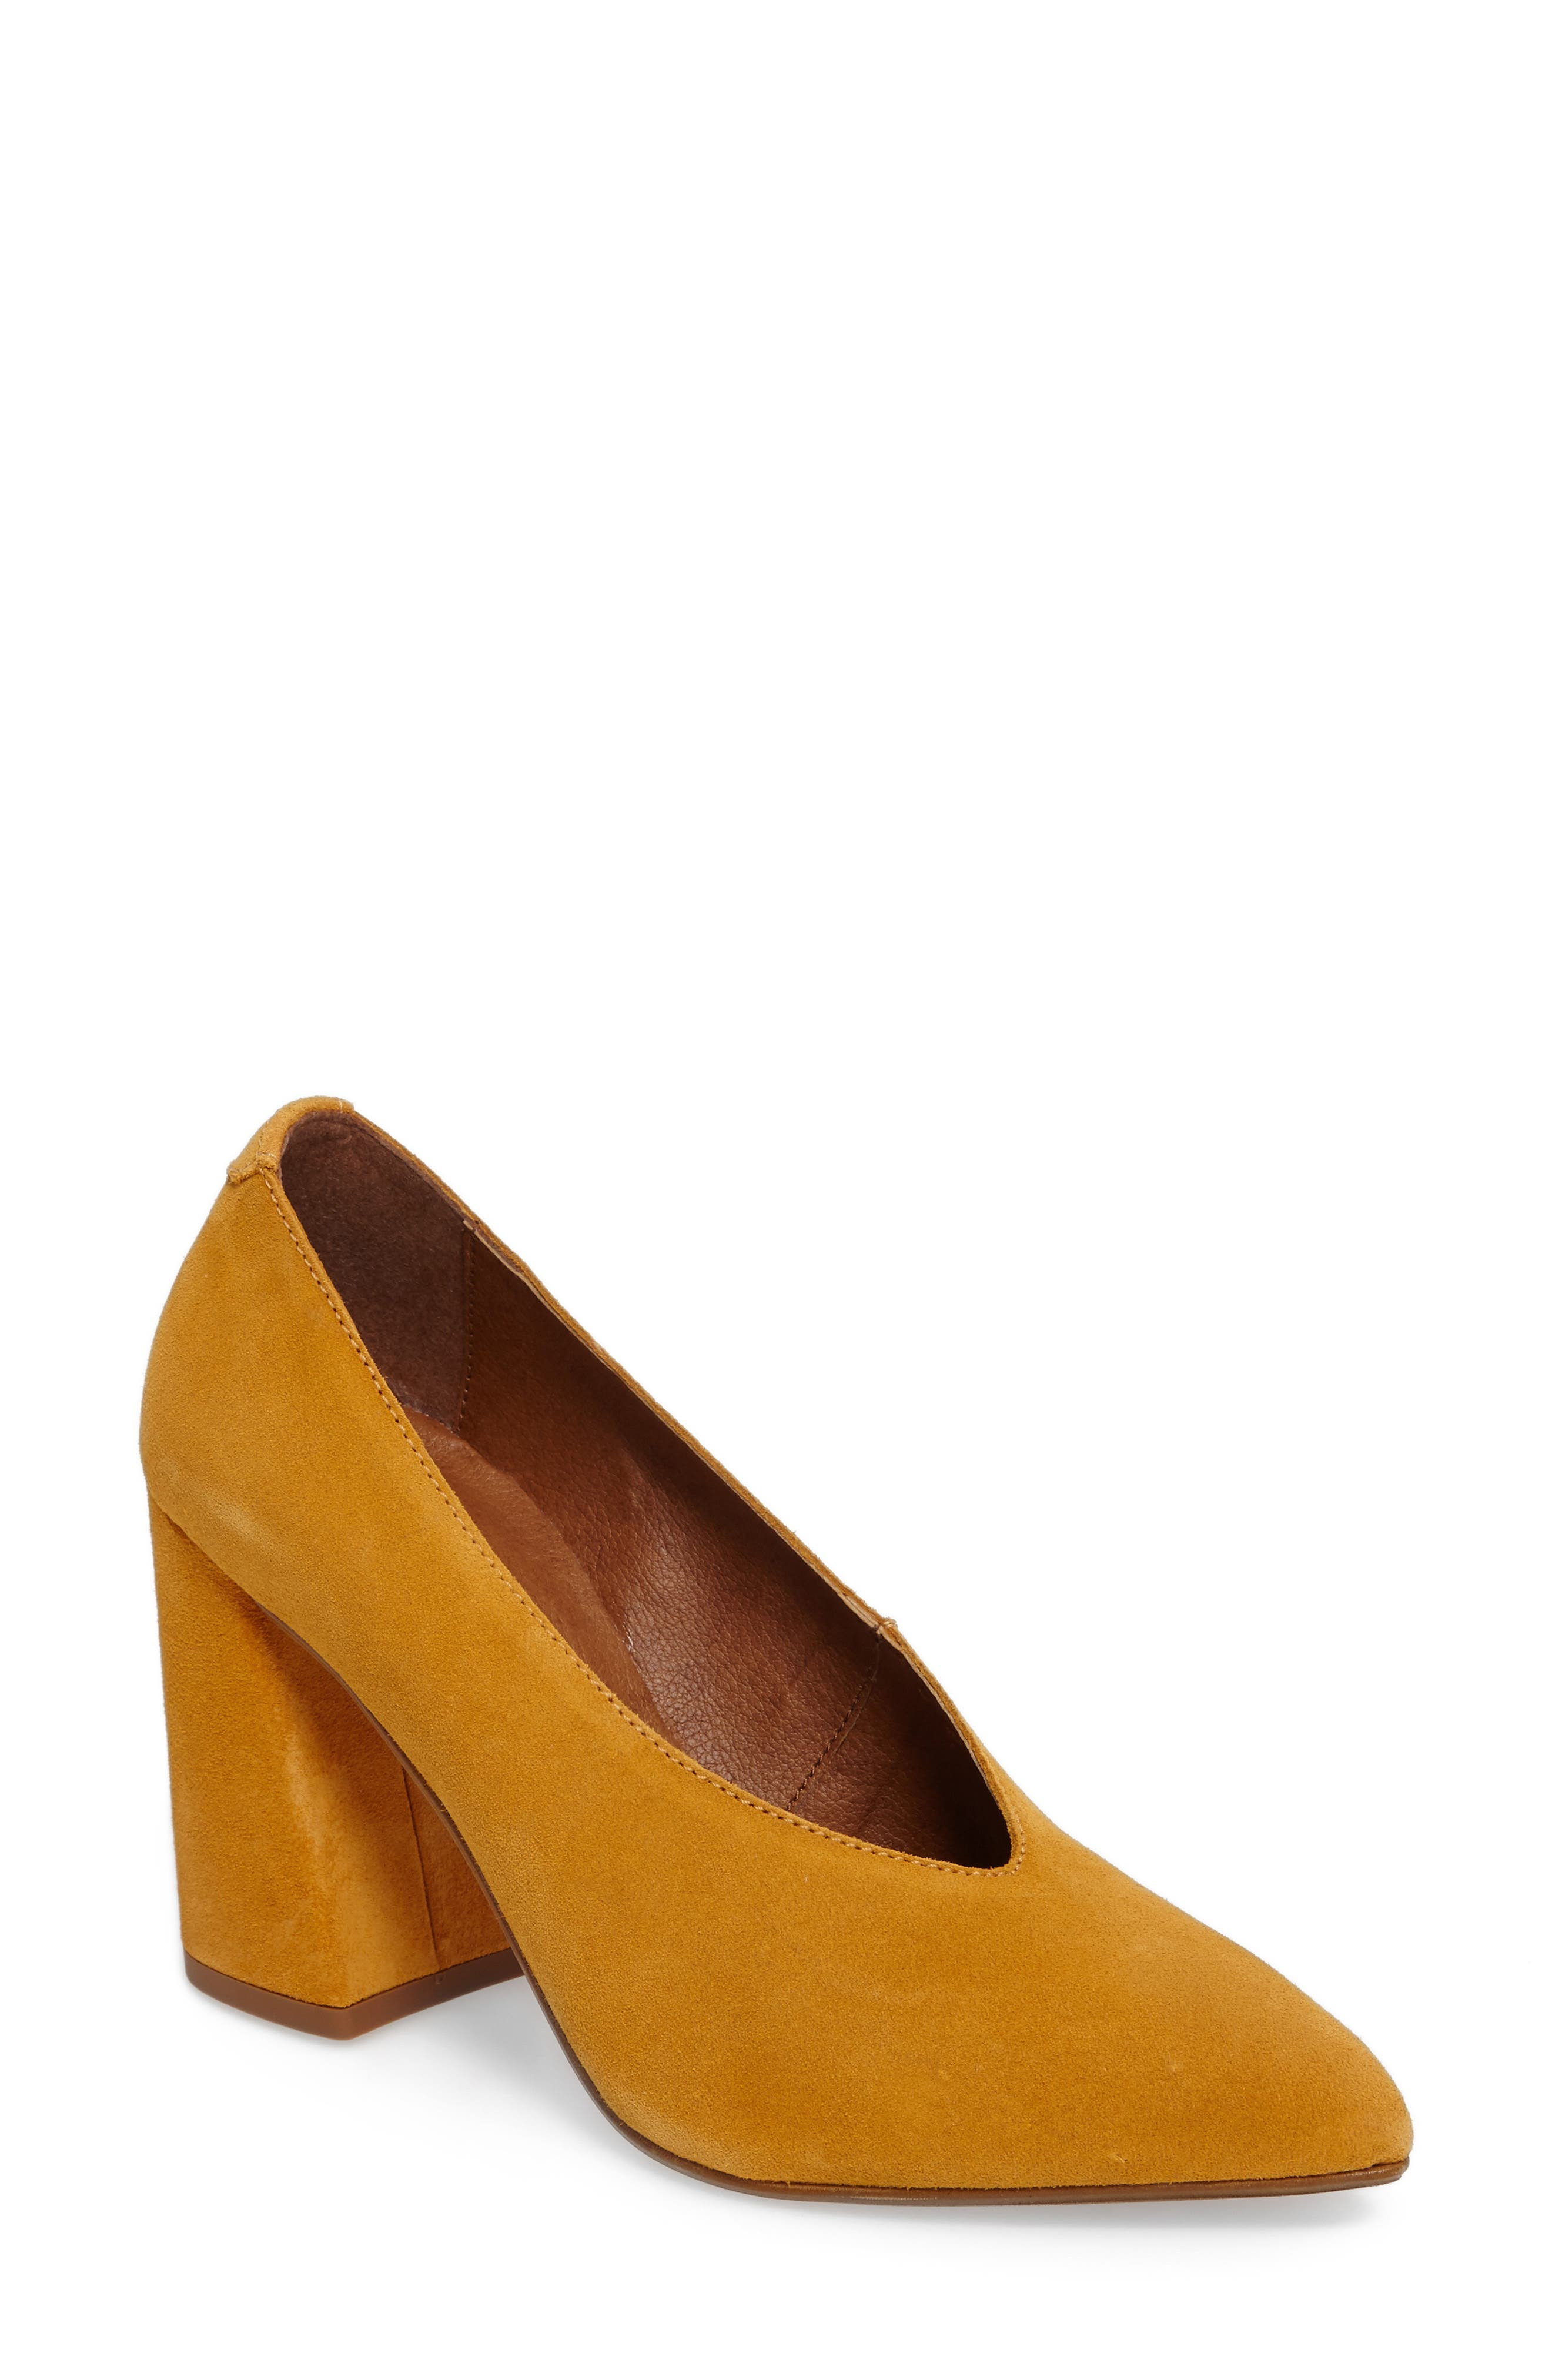 Gina V Cut Pump,                         Main,                         color, Mustard Leather